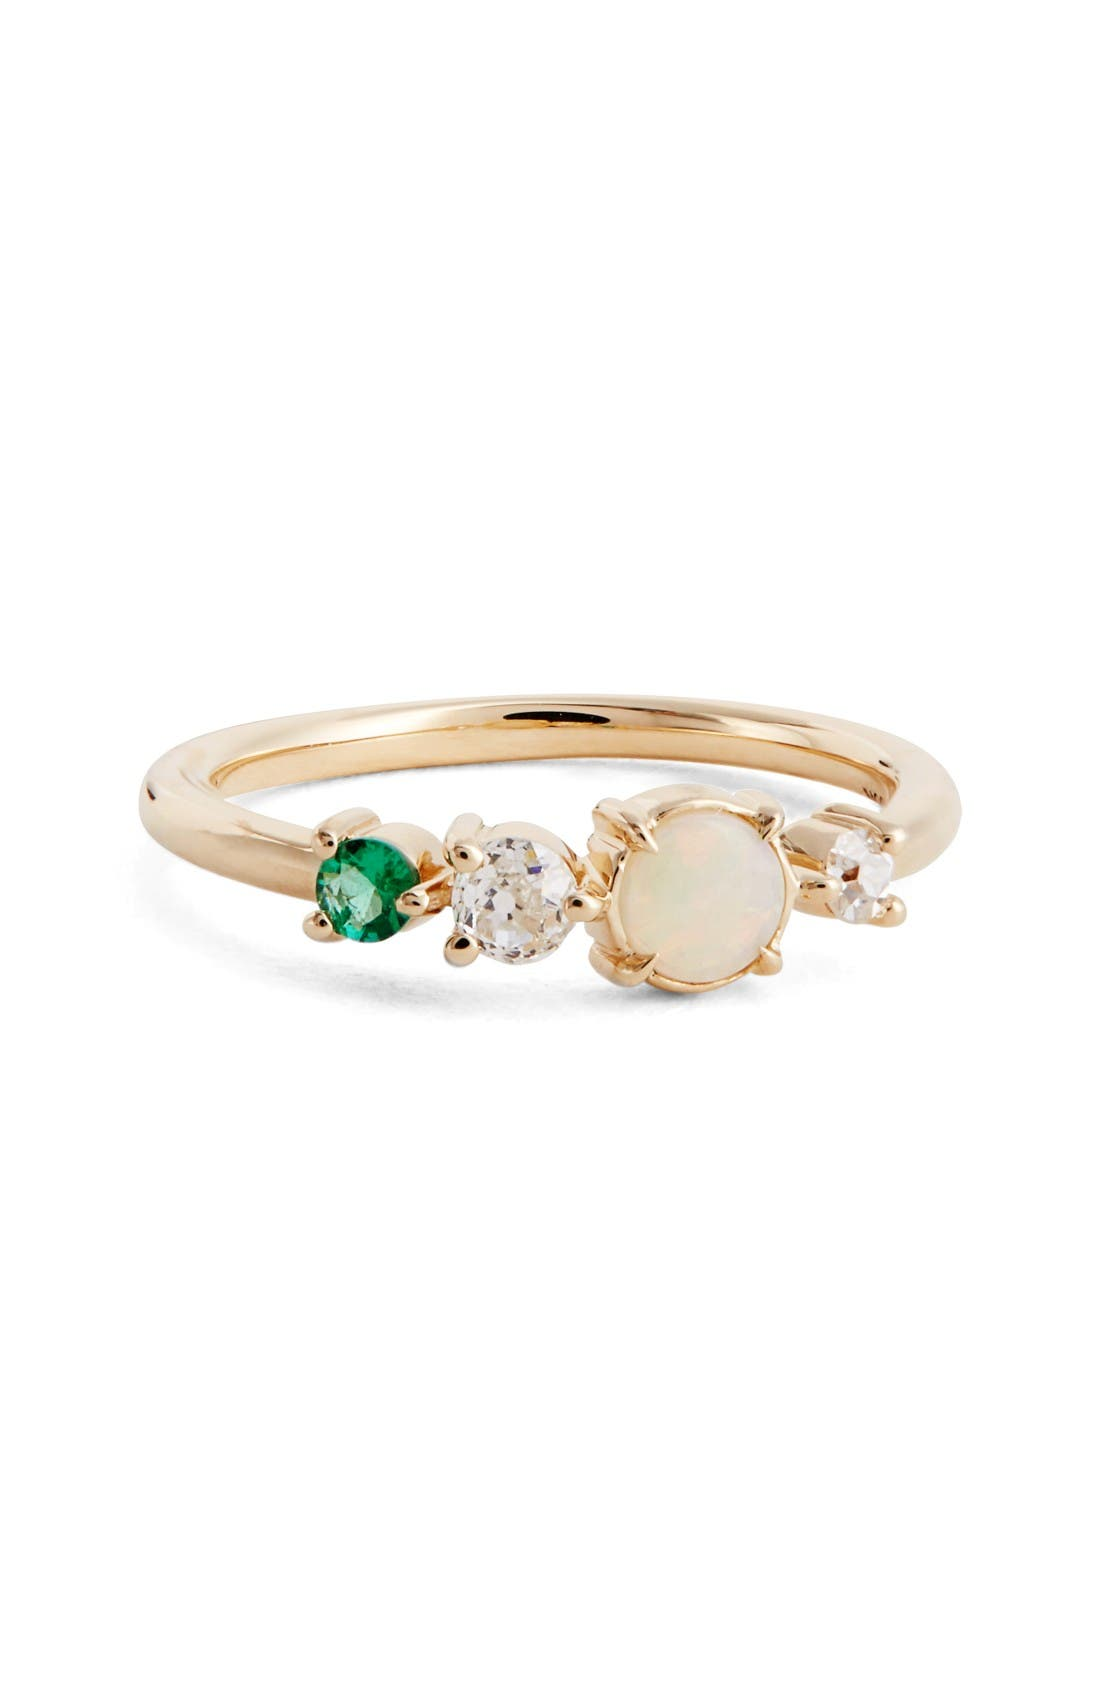 MOCIUN Emerald, Opal & Diamond Ring (Nordstrom Exclusive)